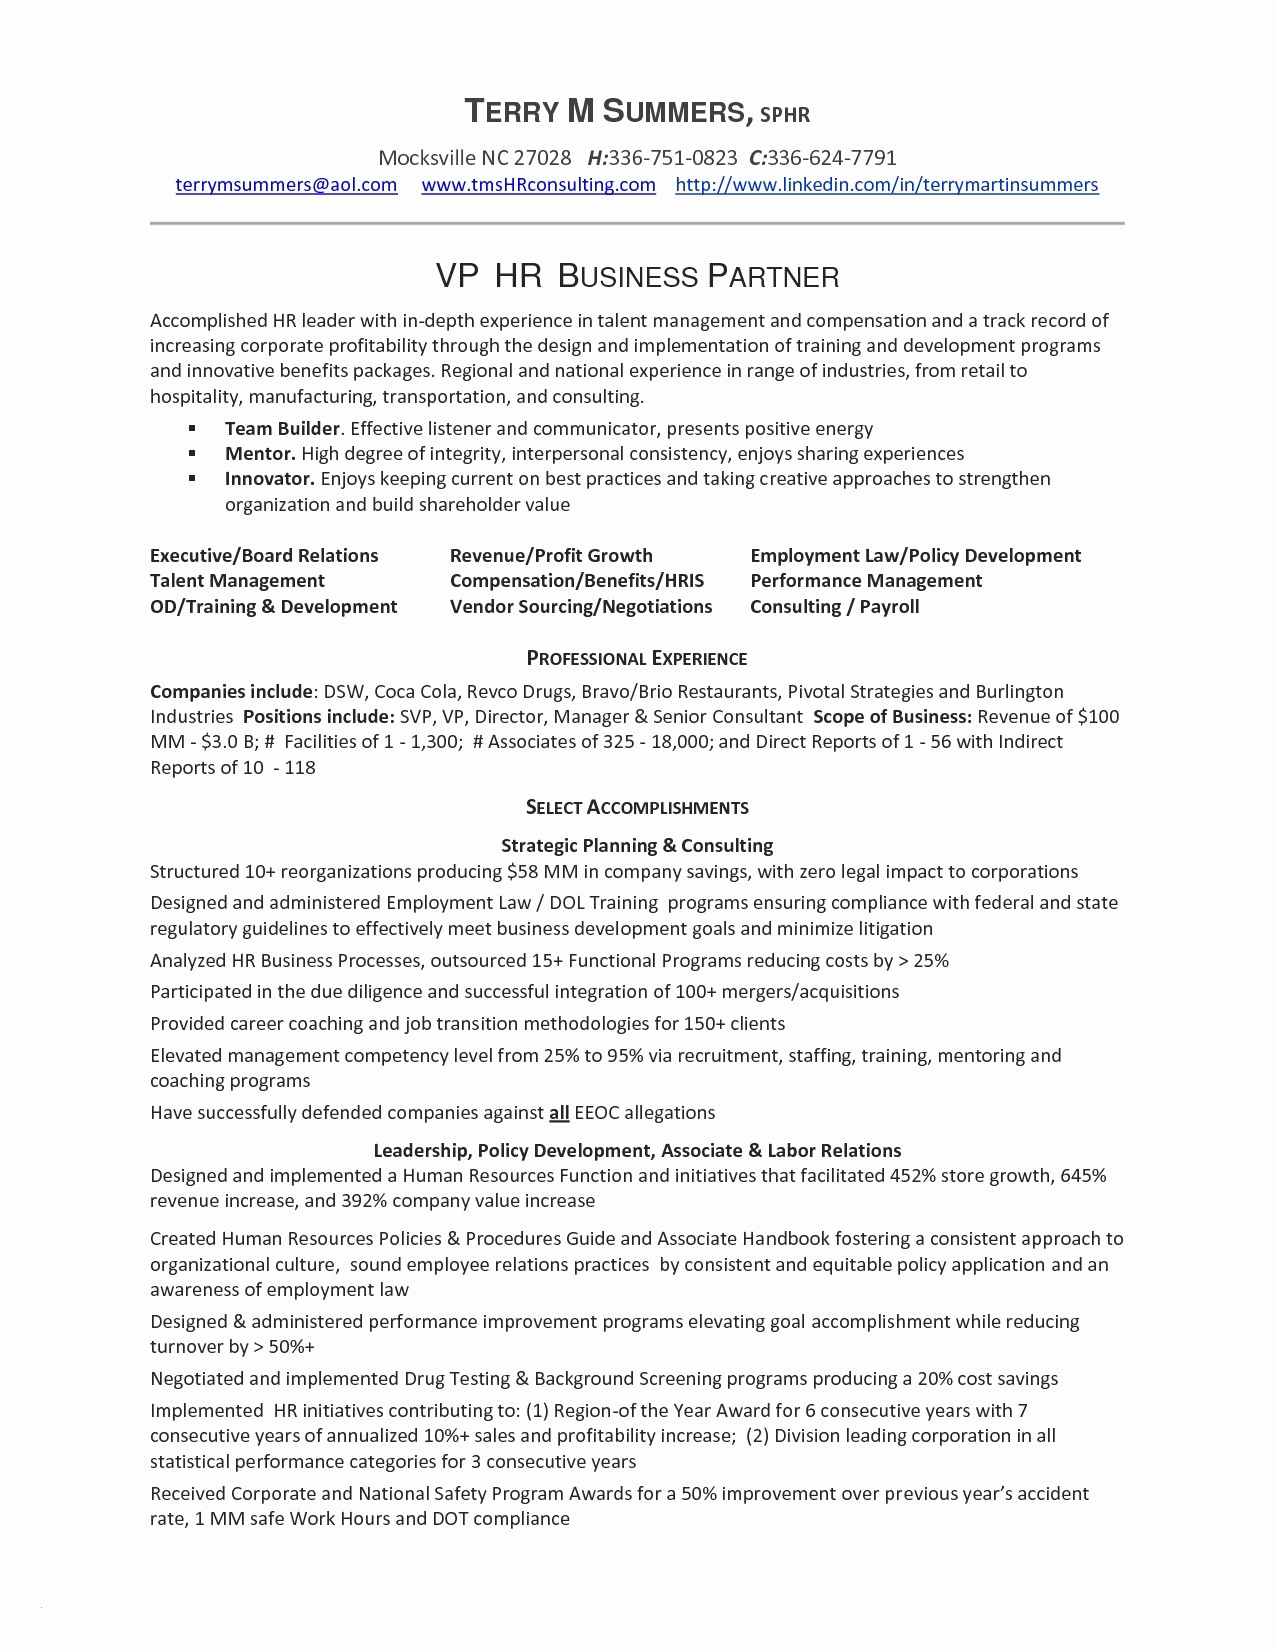 business analyst resume template Collection-Simple Resume format Doc New Resume Template Doc Lovely Business Analyst Resume Sample Doc 1-c